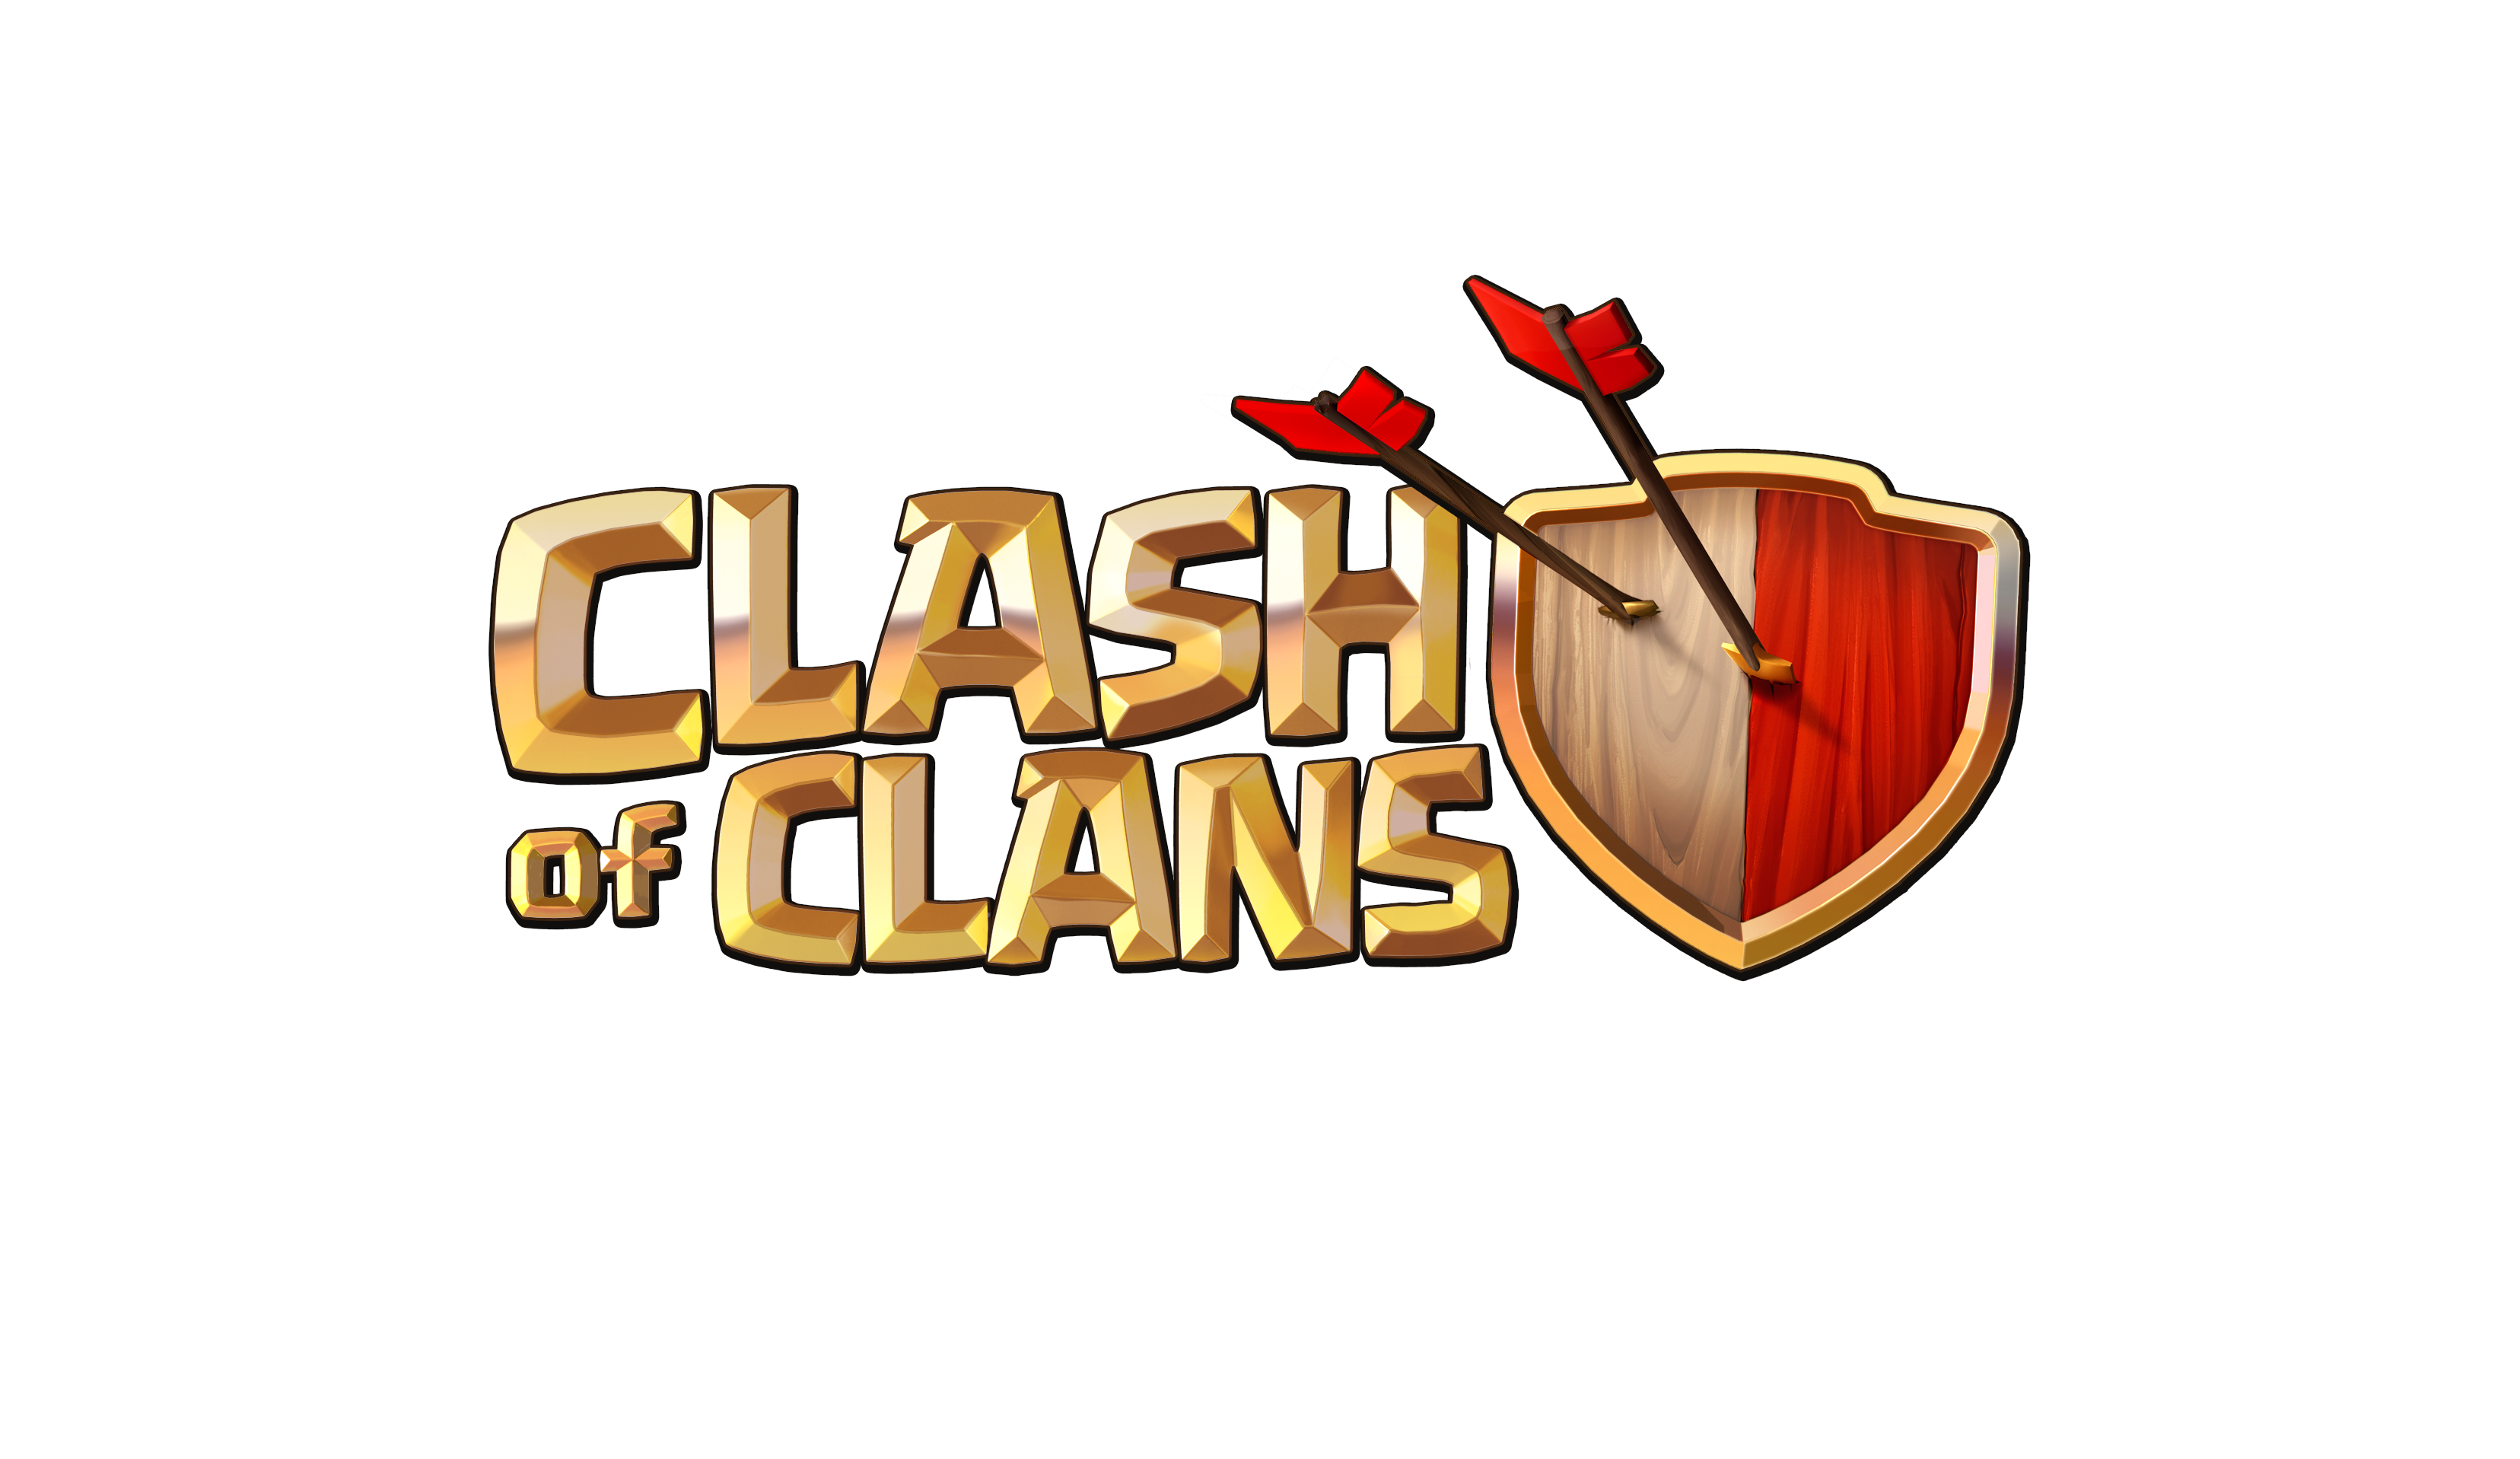 Youtube clipart clash royale. Of clans logos